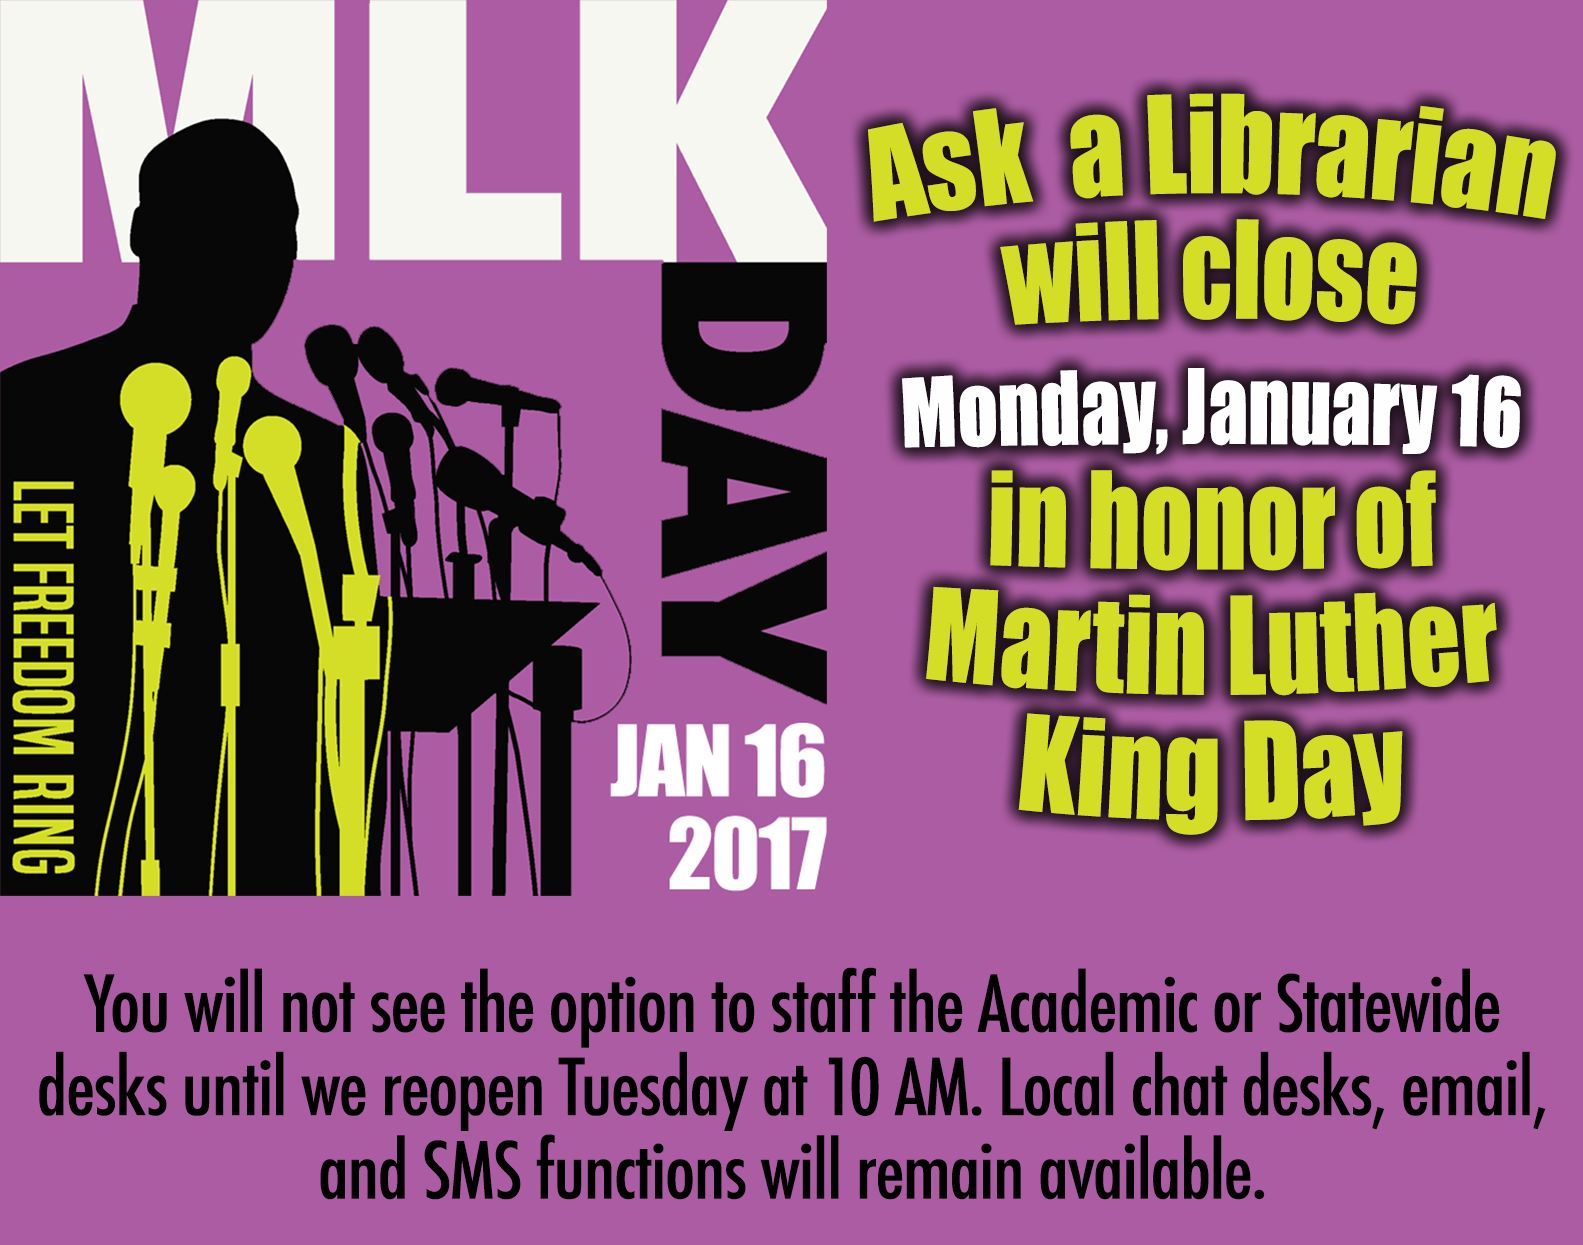 for mlk day if your library monitors through a shared account remember to keep these desks closed all other users shouldnt see an option to staff